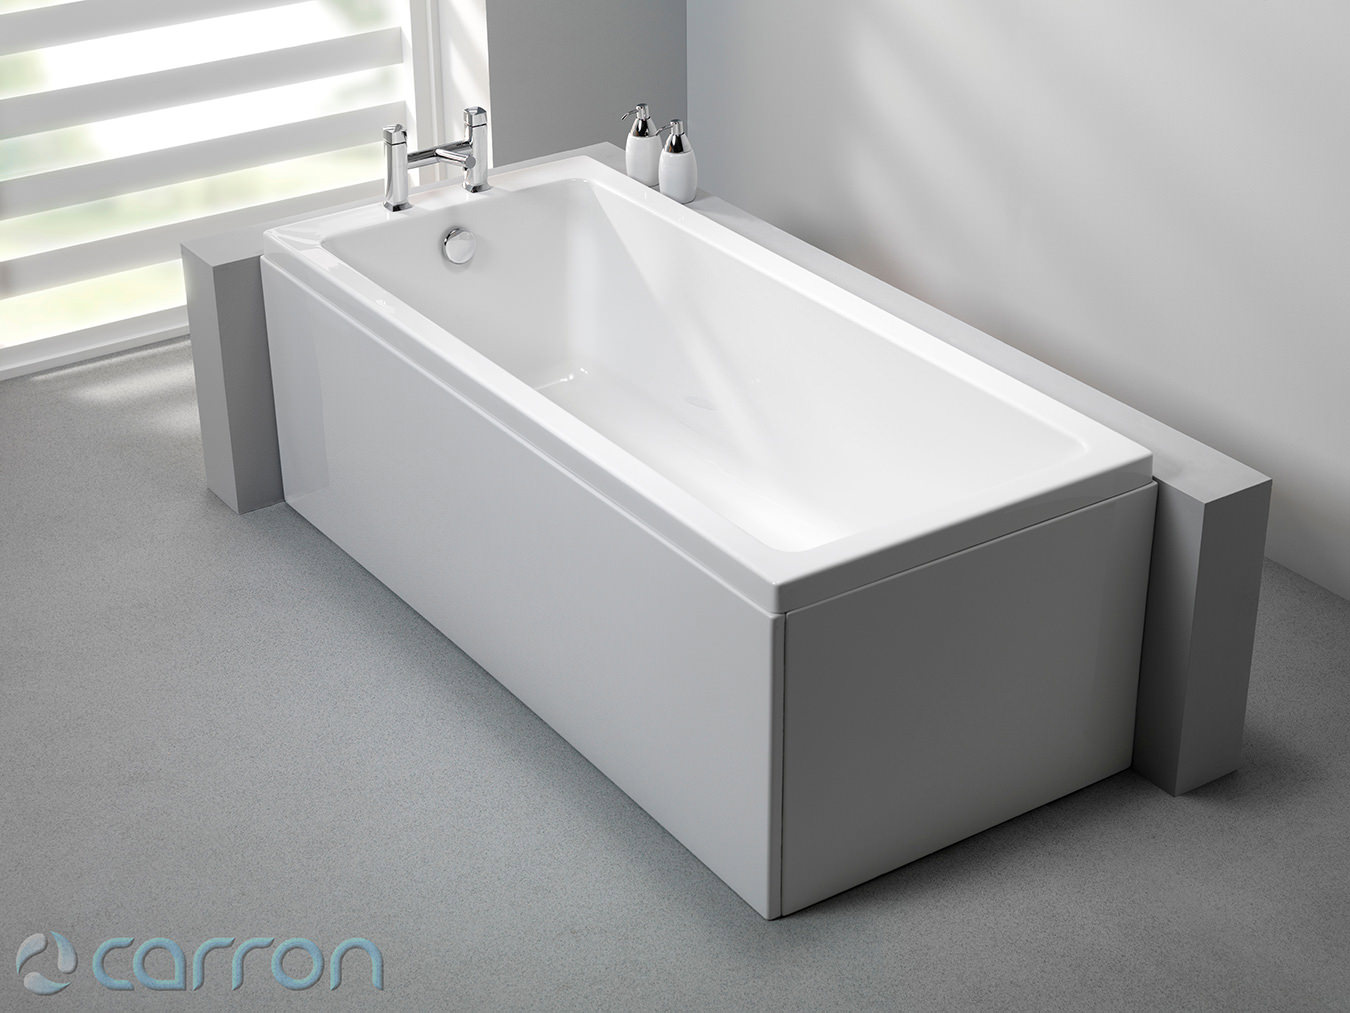 carron quantum single ended acrylic bath 1800 x 800mm ForBath 1800